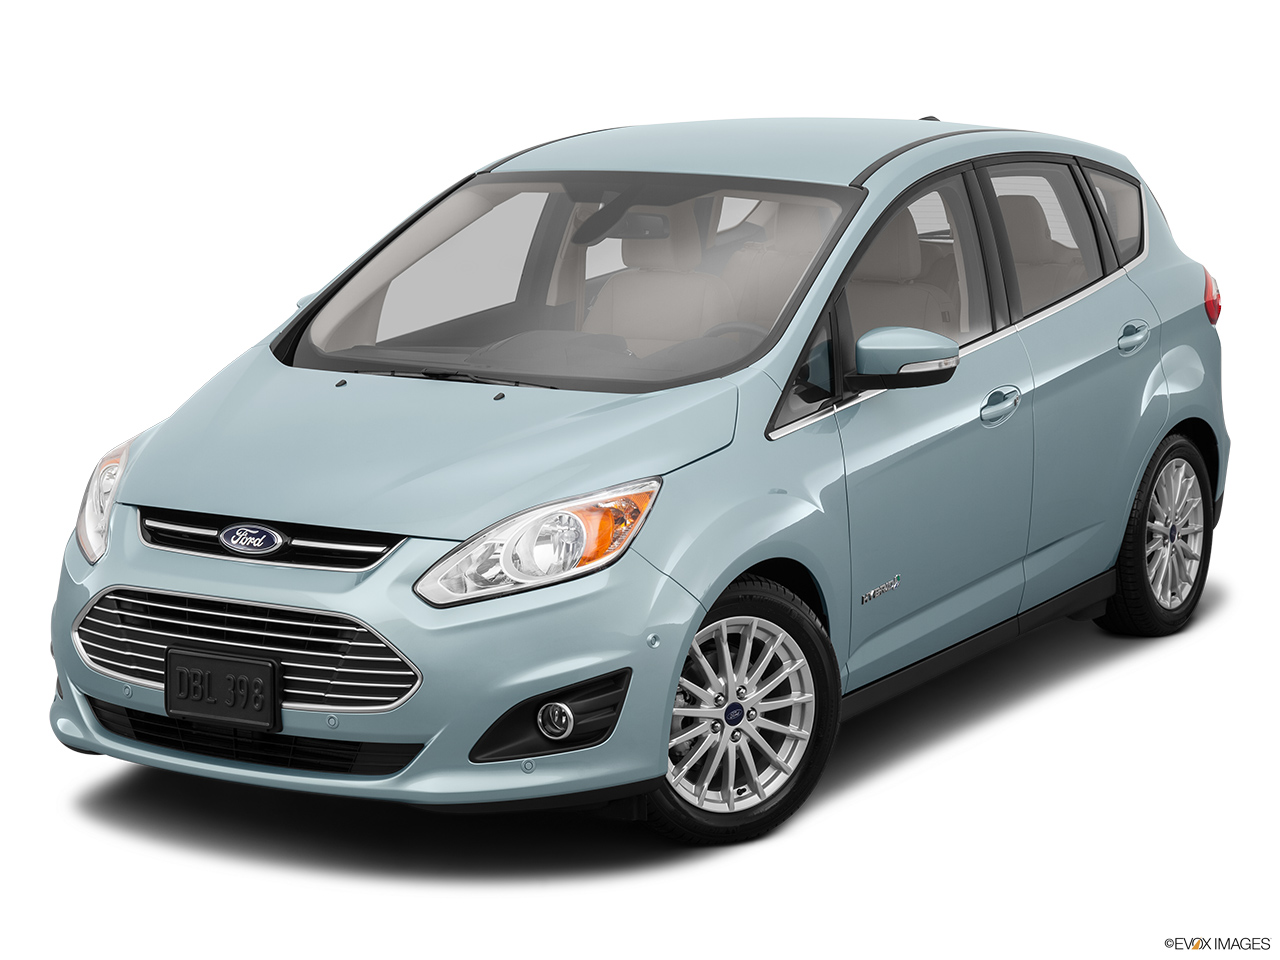 2015 ford c max energi 5dr hatchback sel. Black Bedroom Furniture Sets. Home Design Ideas